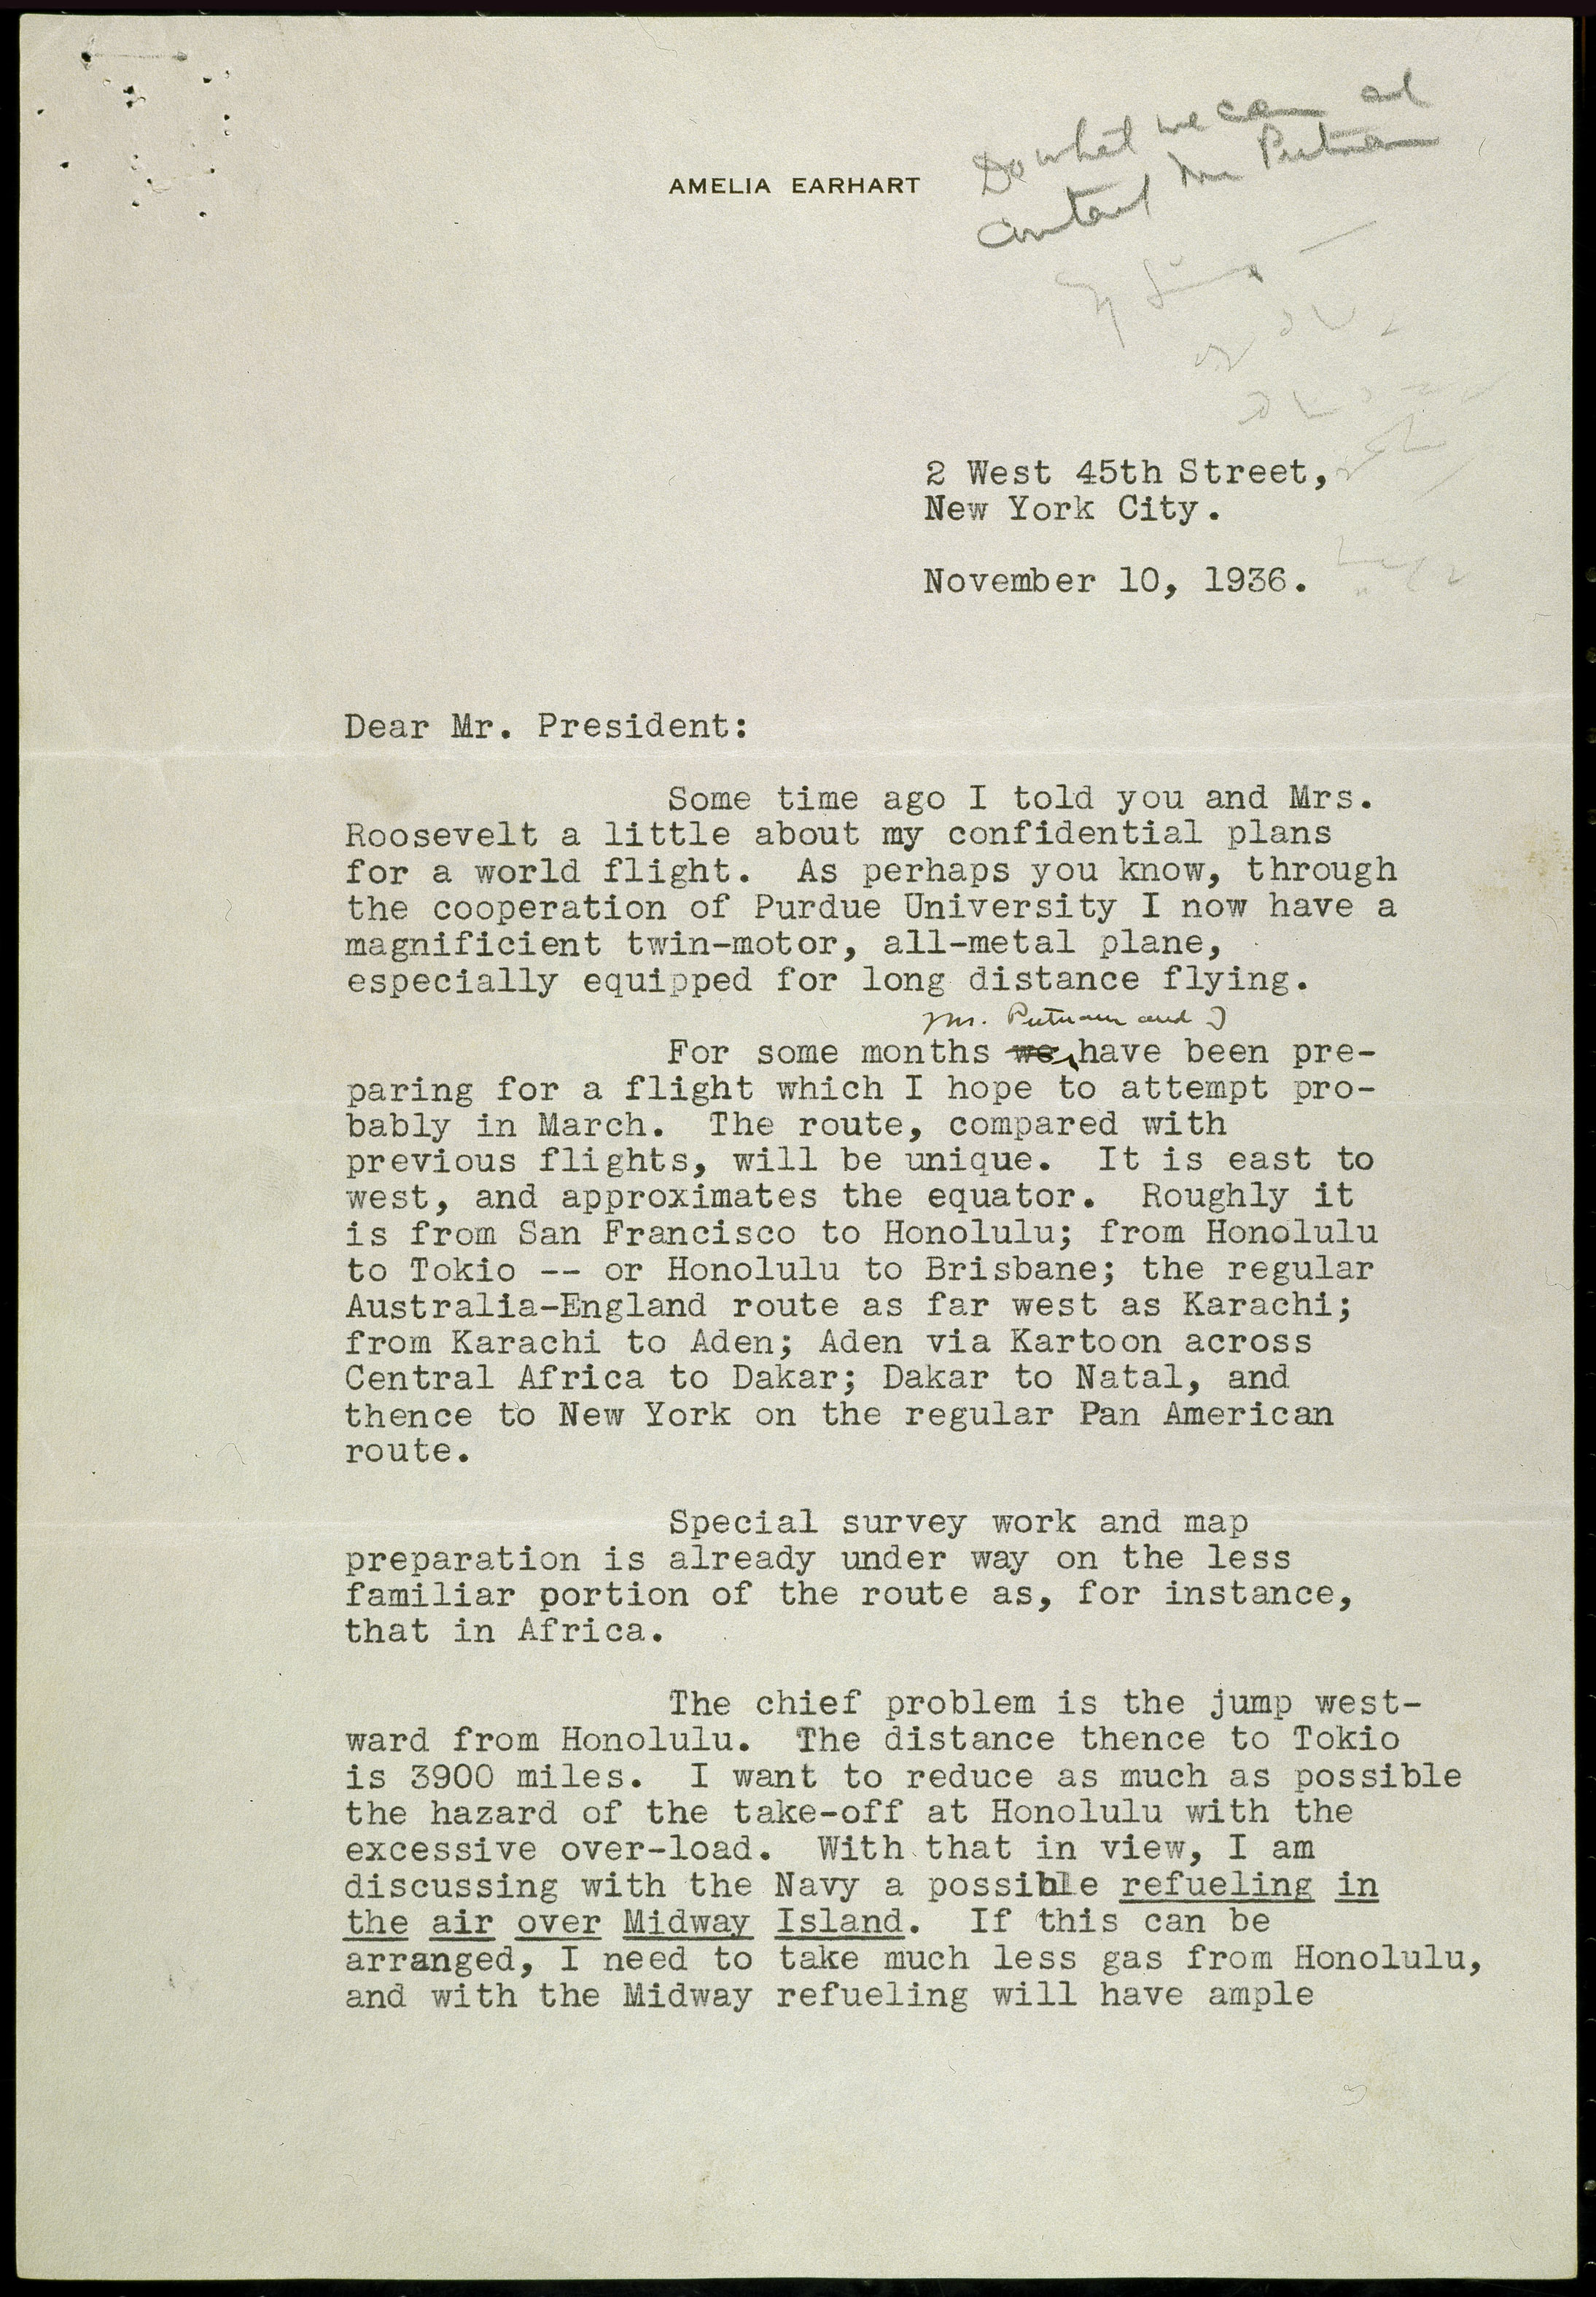 Letter from amelia earhart to president roosevelt regarding her viewadd thecheapjerseys Choice Image